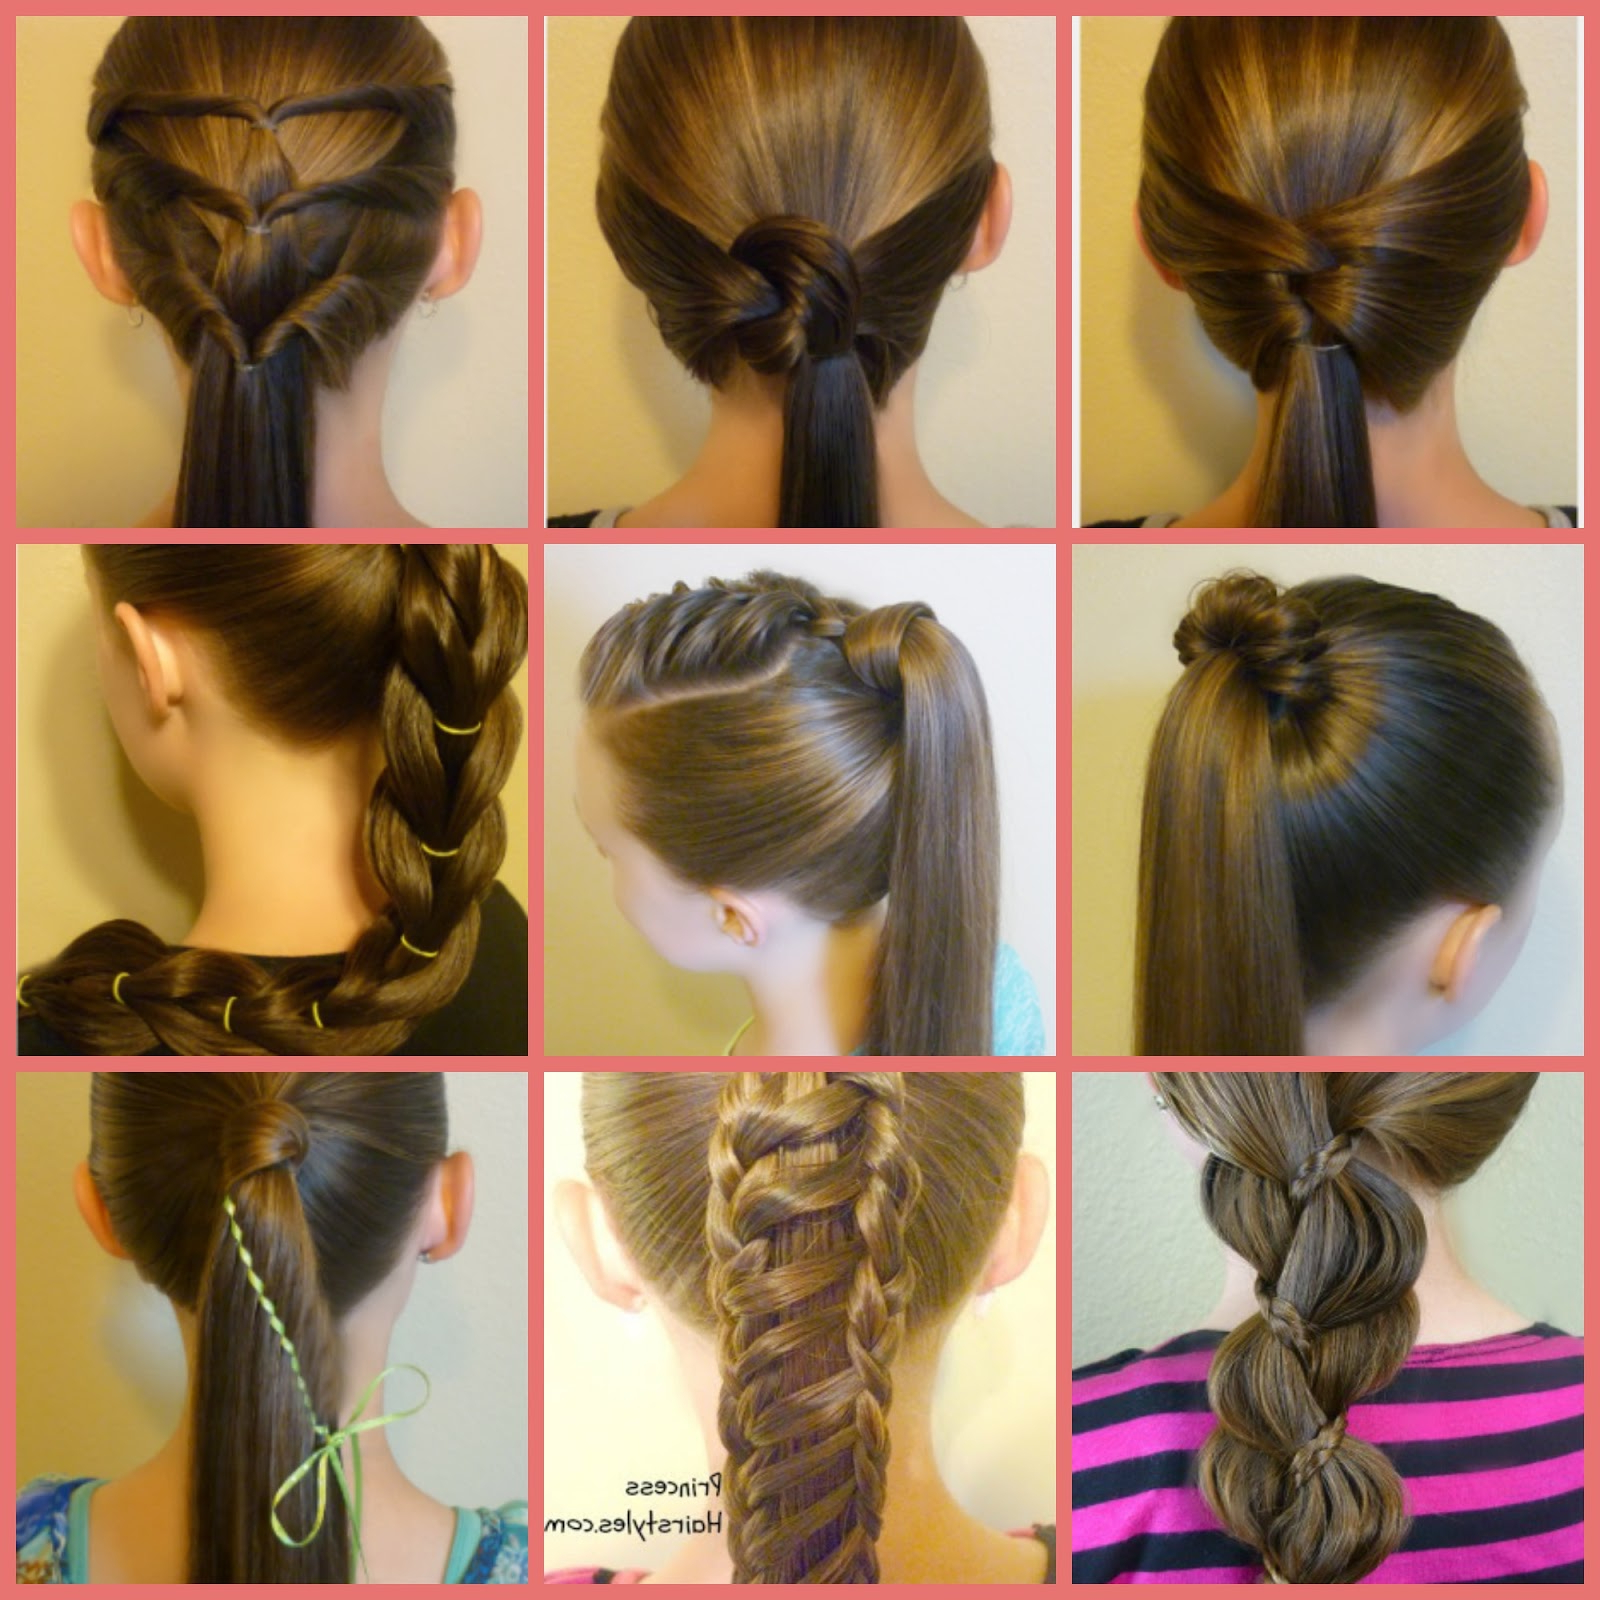 Hairstyles For Girls (Gallery 11 of 20)